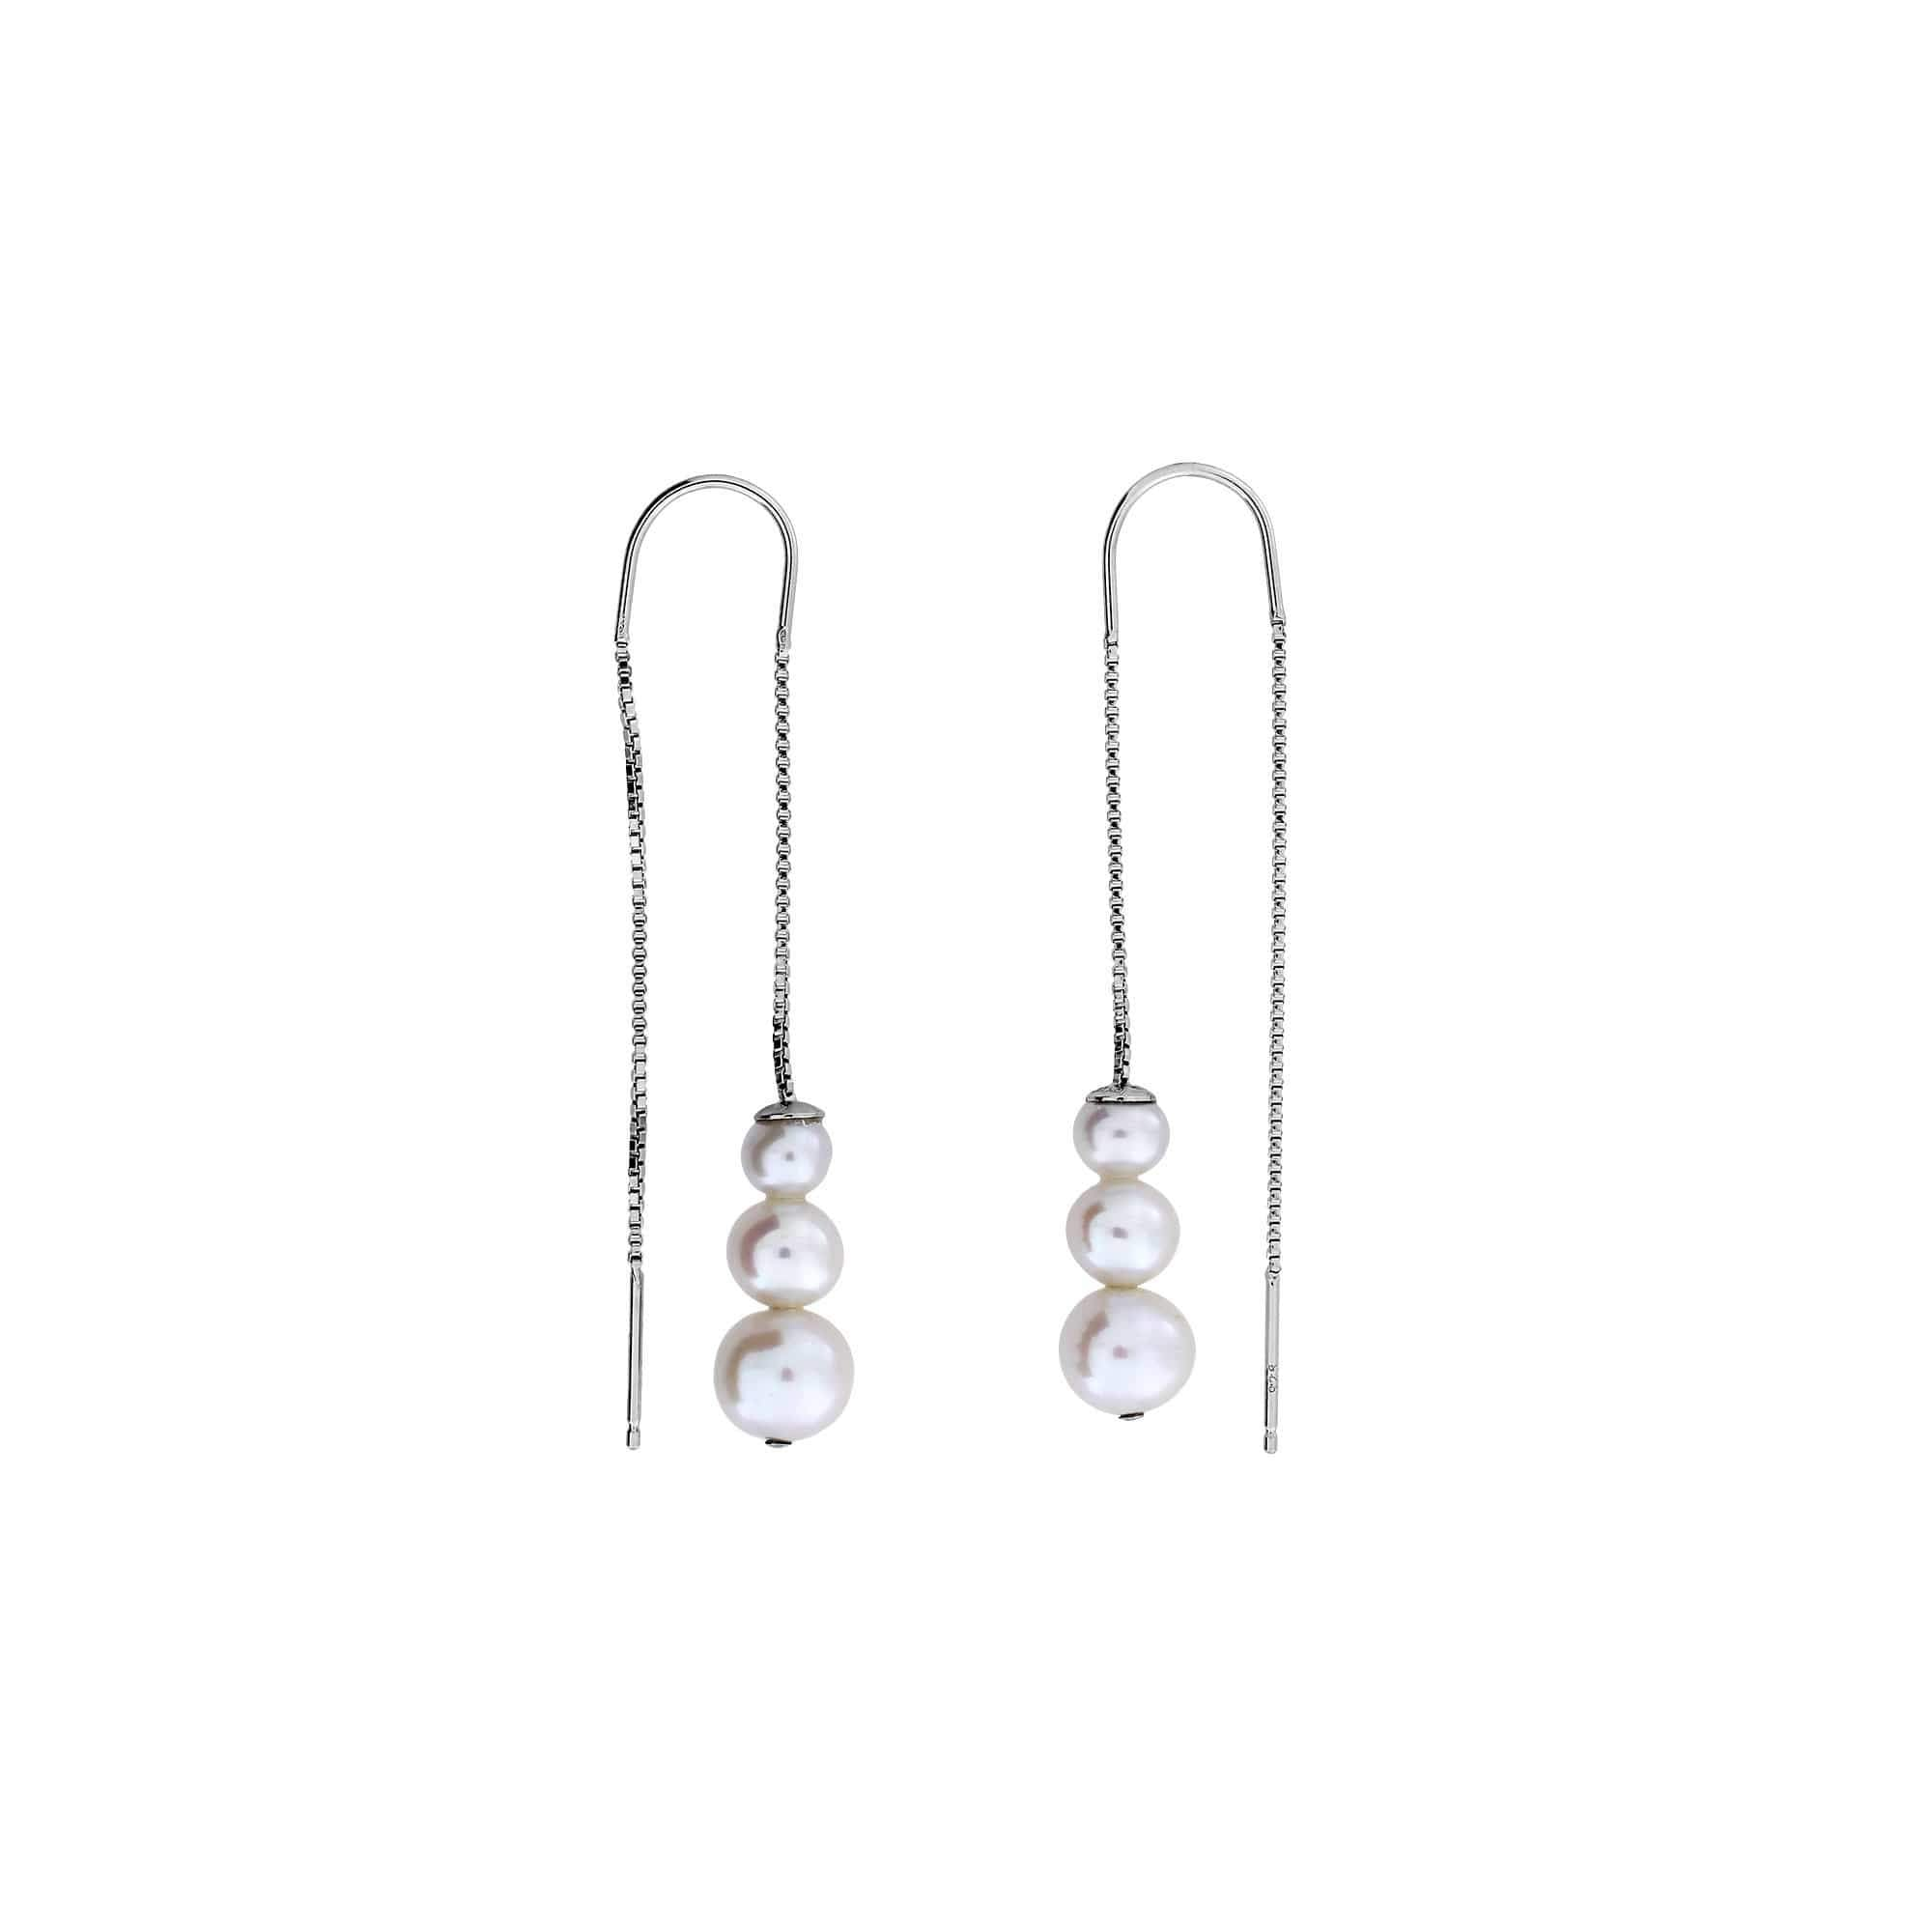 Graduated Pearls Threader Earrings